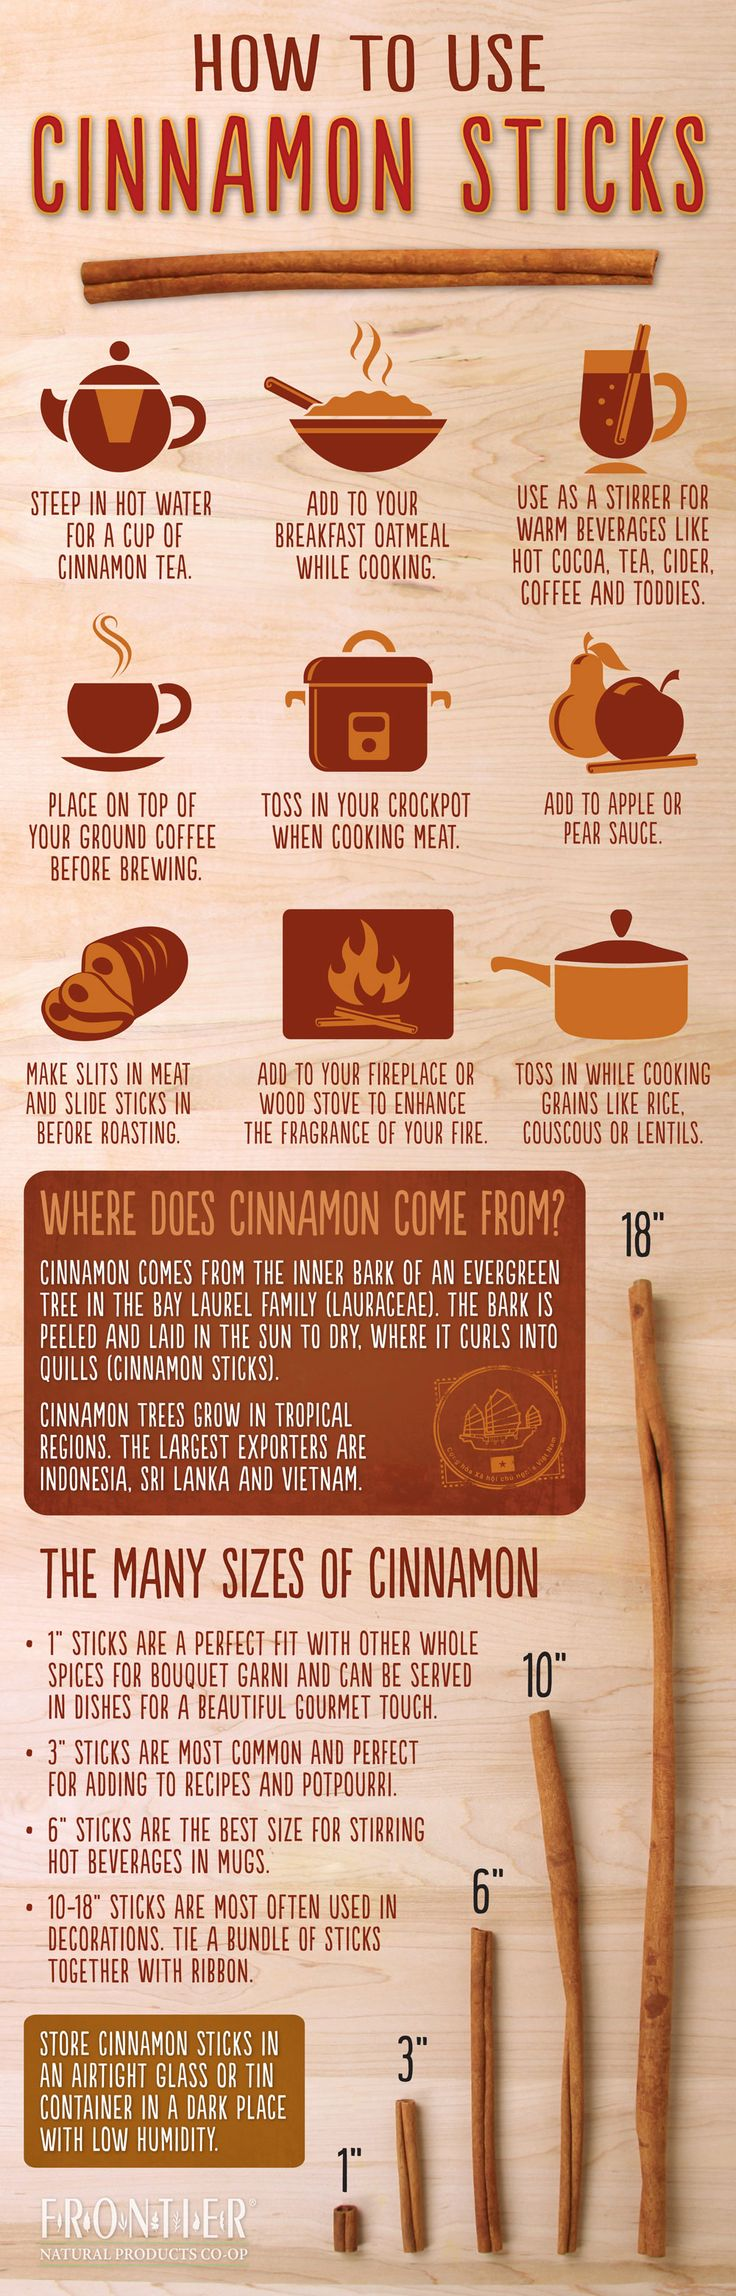 HOW TO USE CINNAMON STICKS. Enjoy this cool infographic detailing uses of this wonderfully healthy spice.